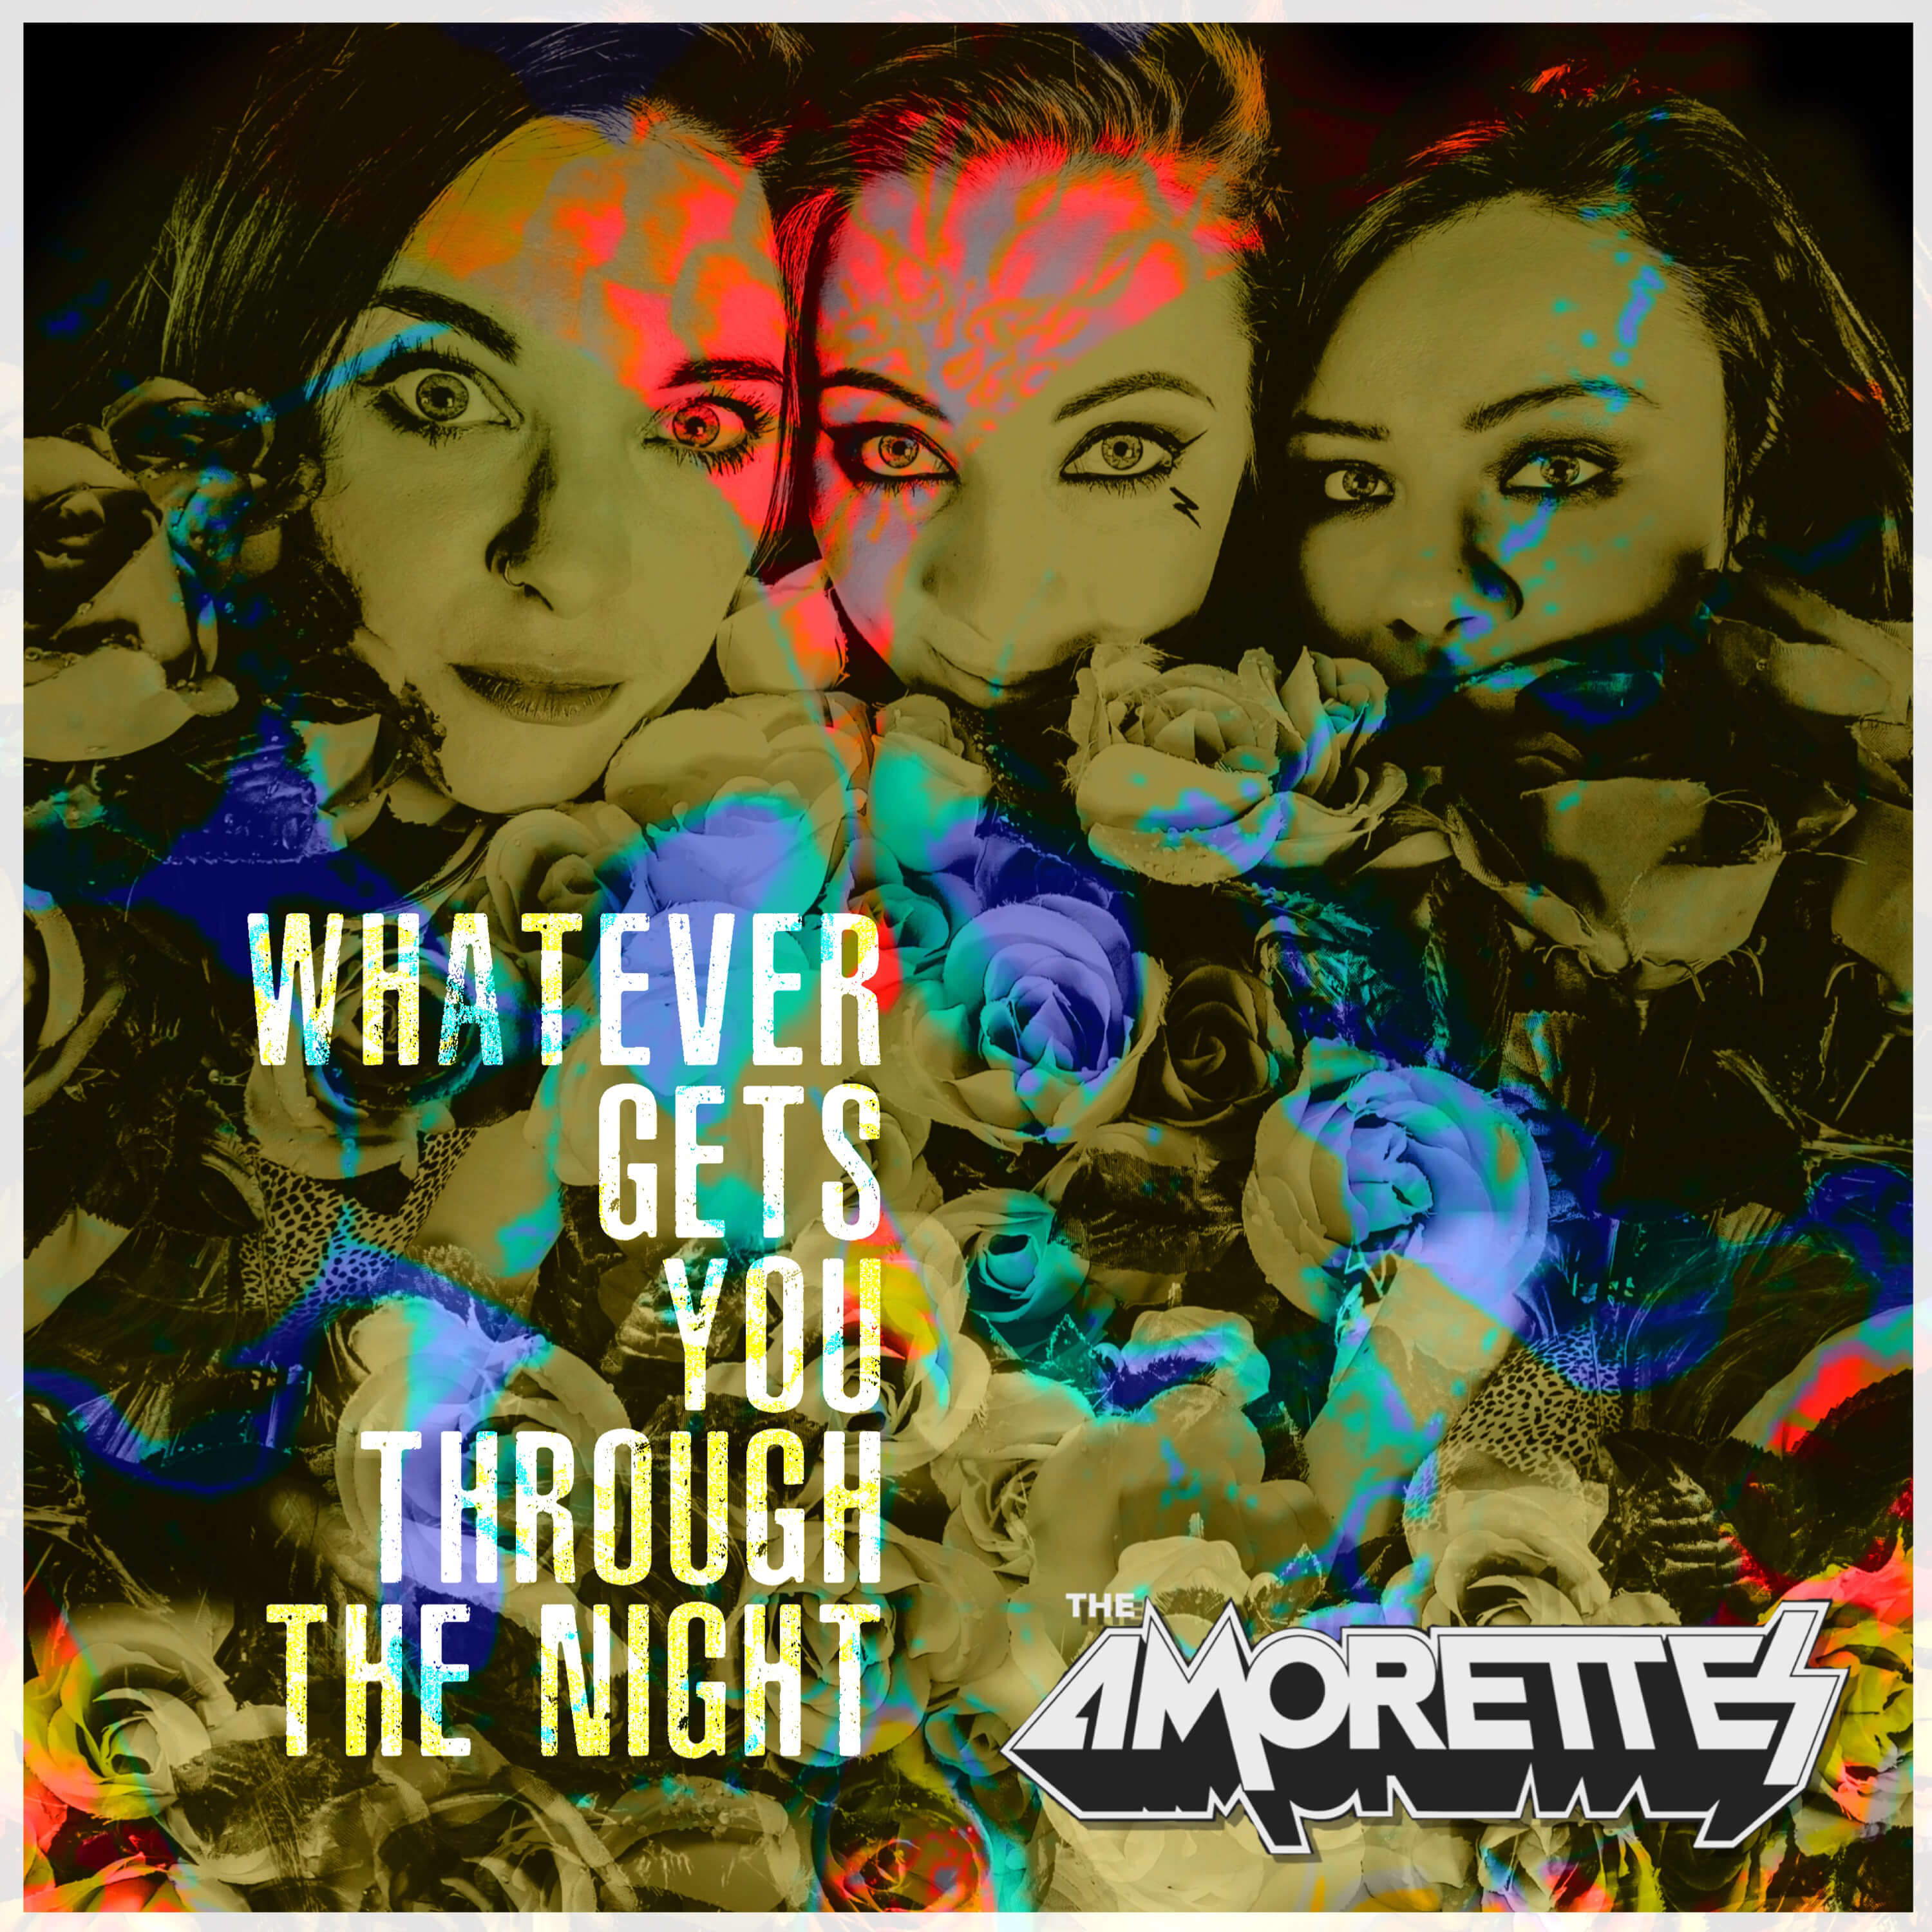 THE AMORETTES release new single and video!